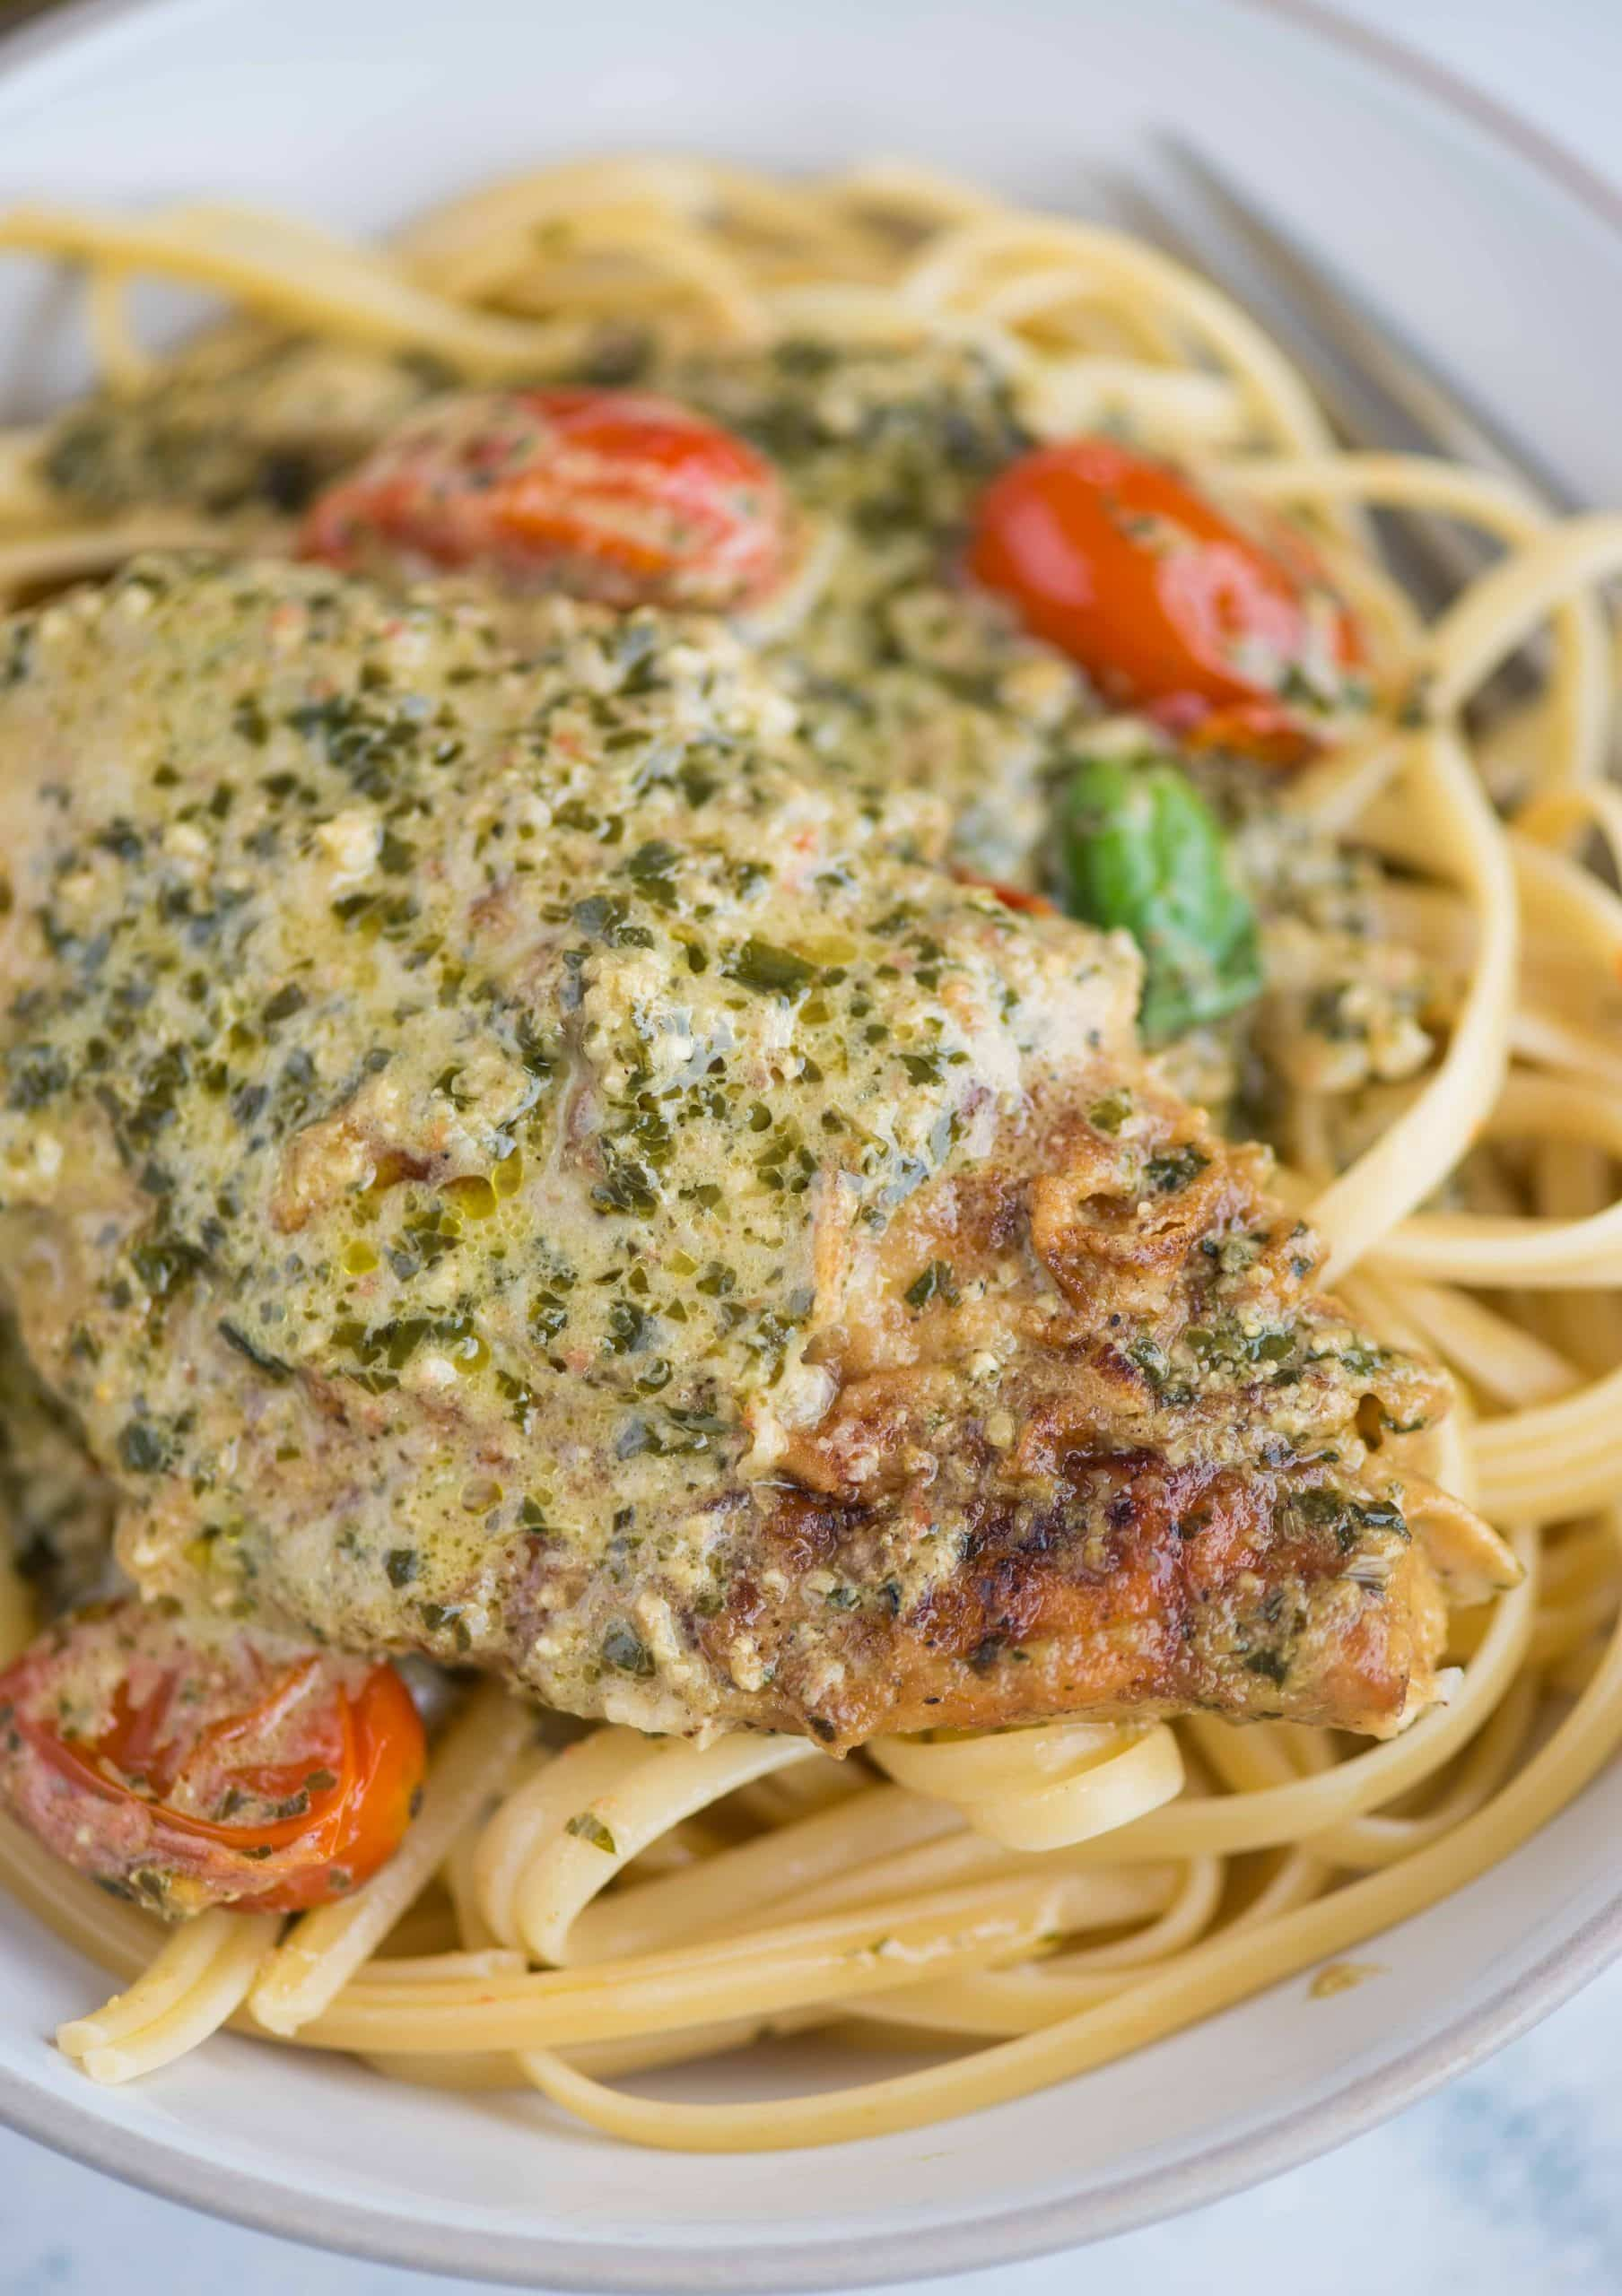 Pesto Chicken in a light and creamy sauce is packed with flavor that takes less than 30 minutes to make. Toss some pasta in the sauce and a delicious dinner is on the table in no time.